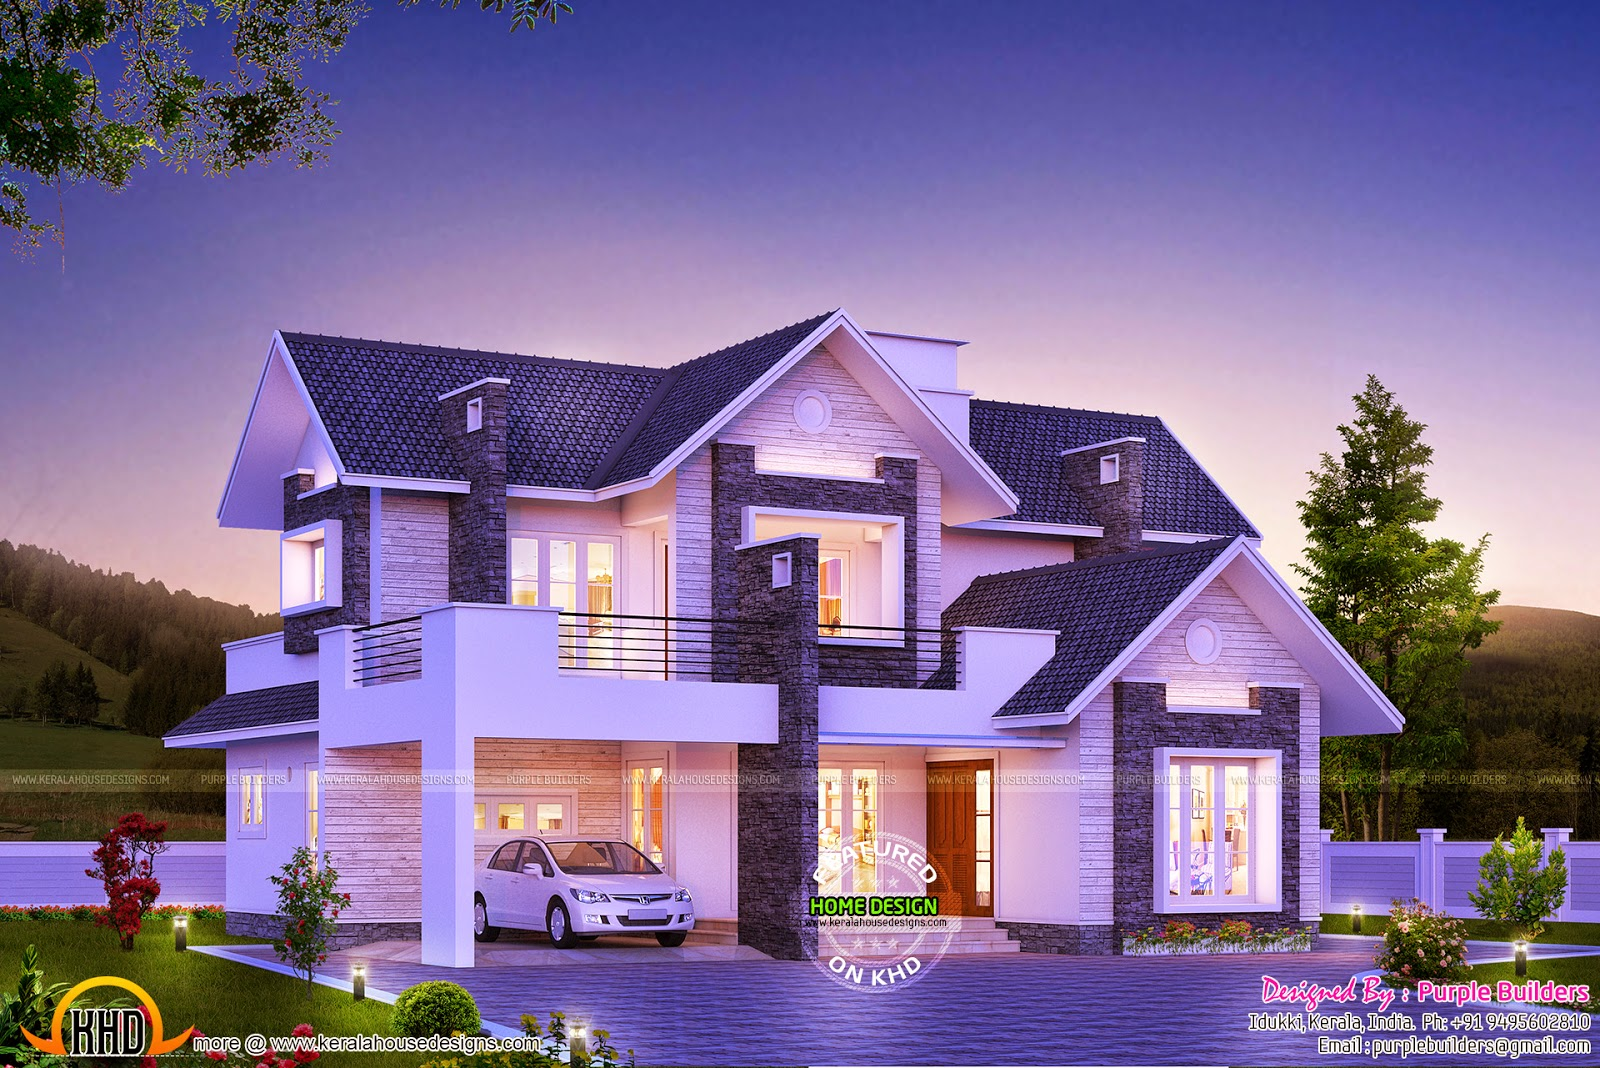 Super dream home kerala home design and floor plans for Dream home house plans